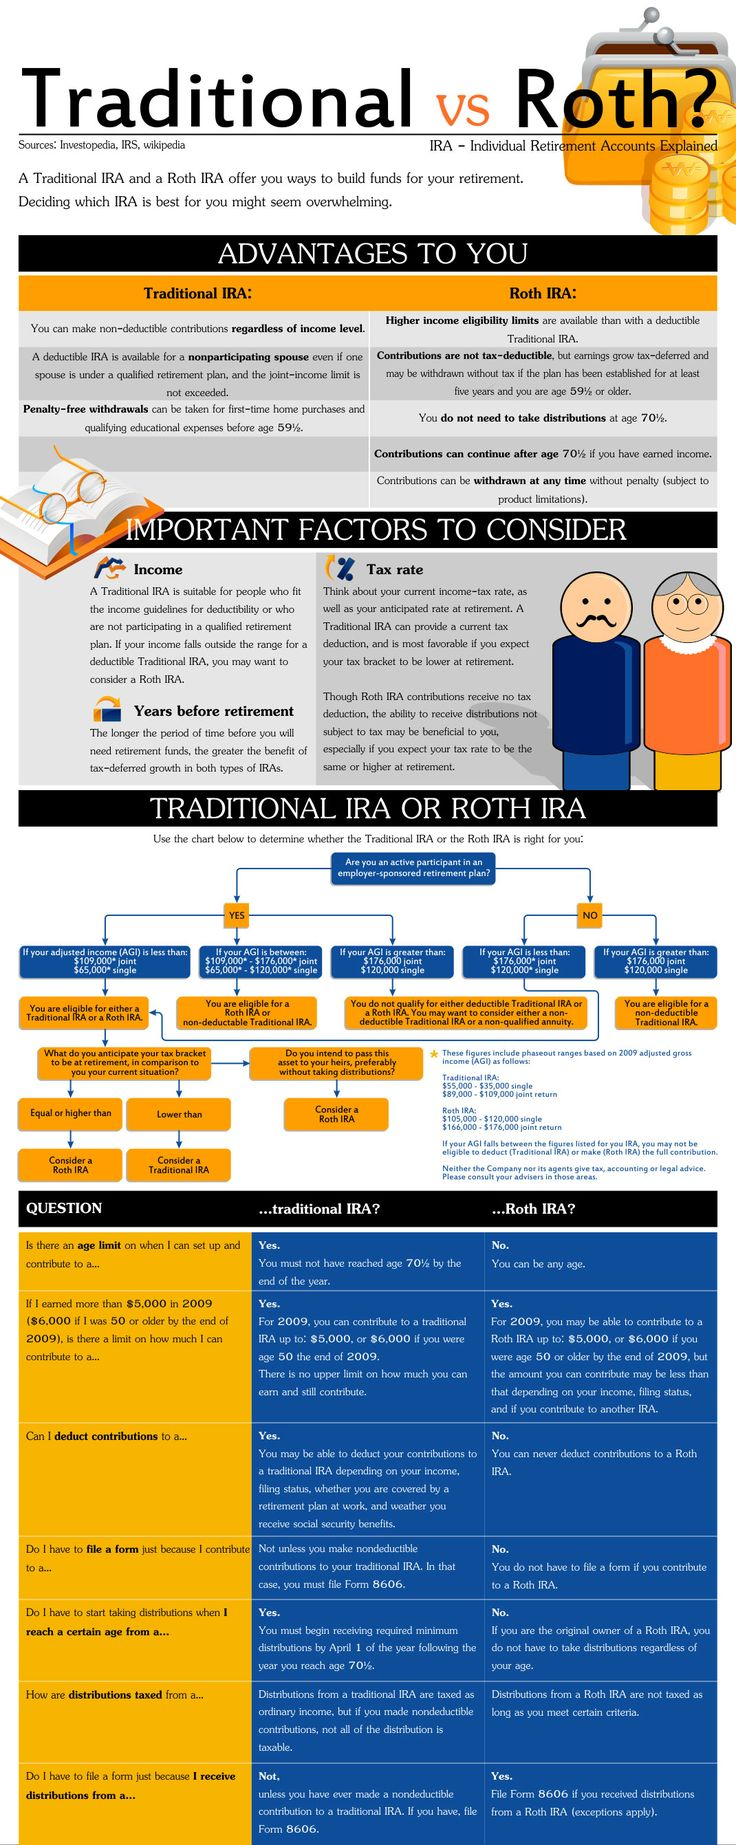 Traditional IRA vs. Roth IRA: How to Decide which IRA is best for you.